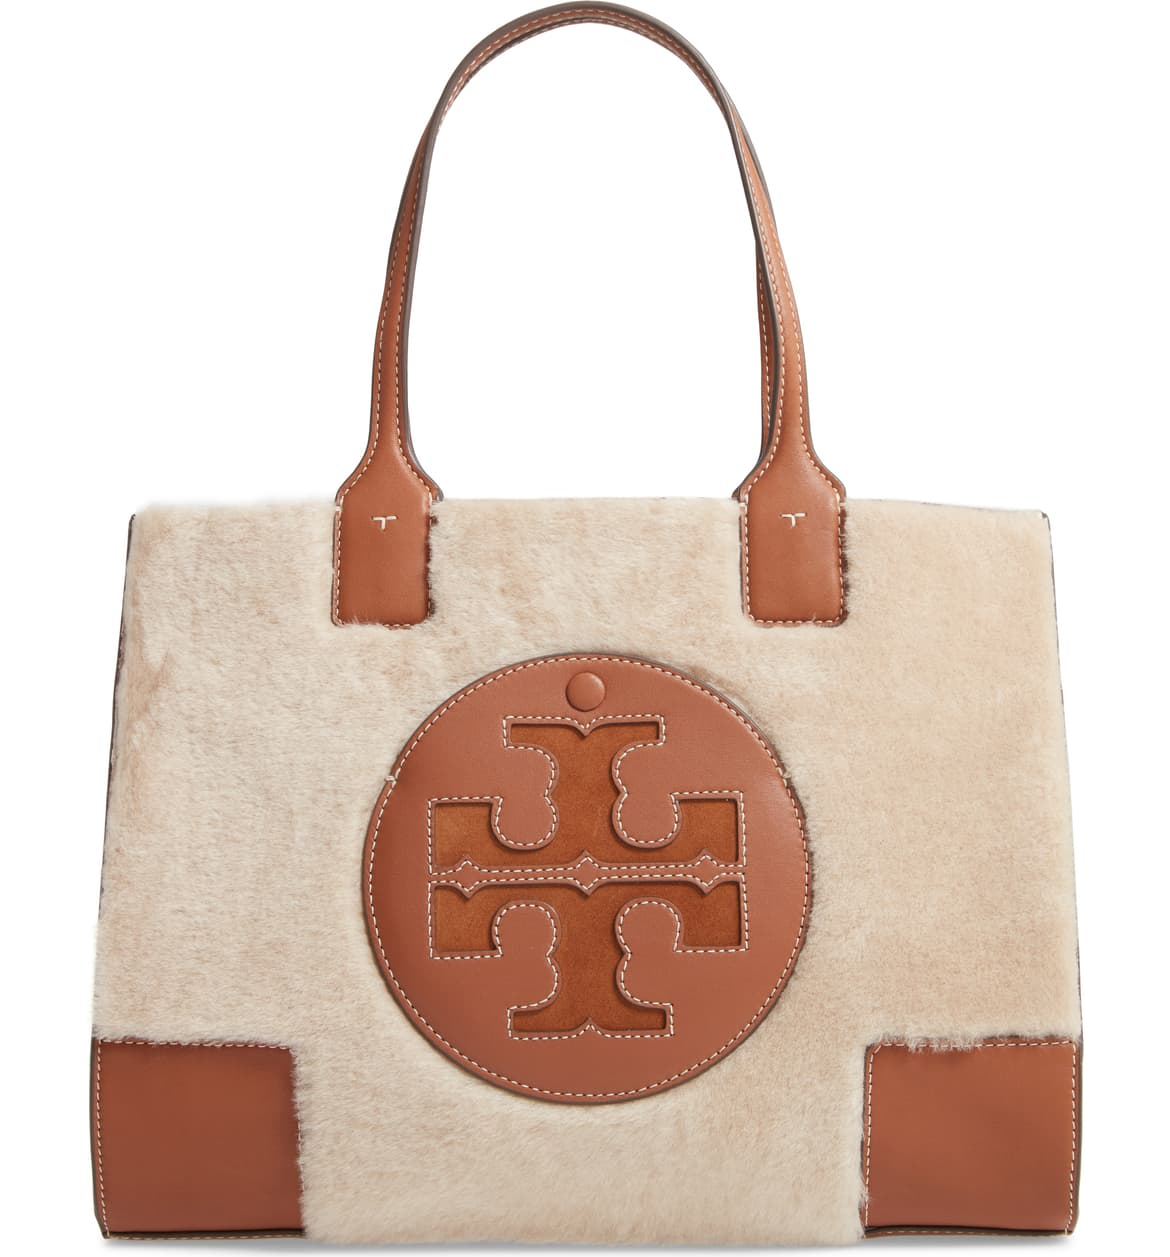 tory burch shearling tote with brown leather detail nordstrom winter sale